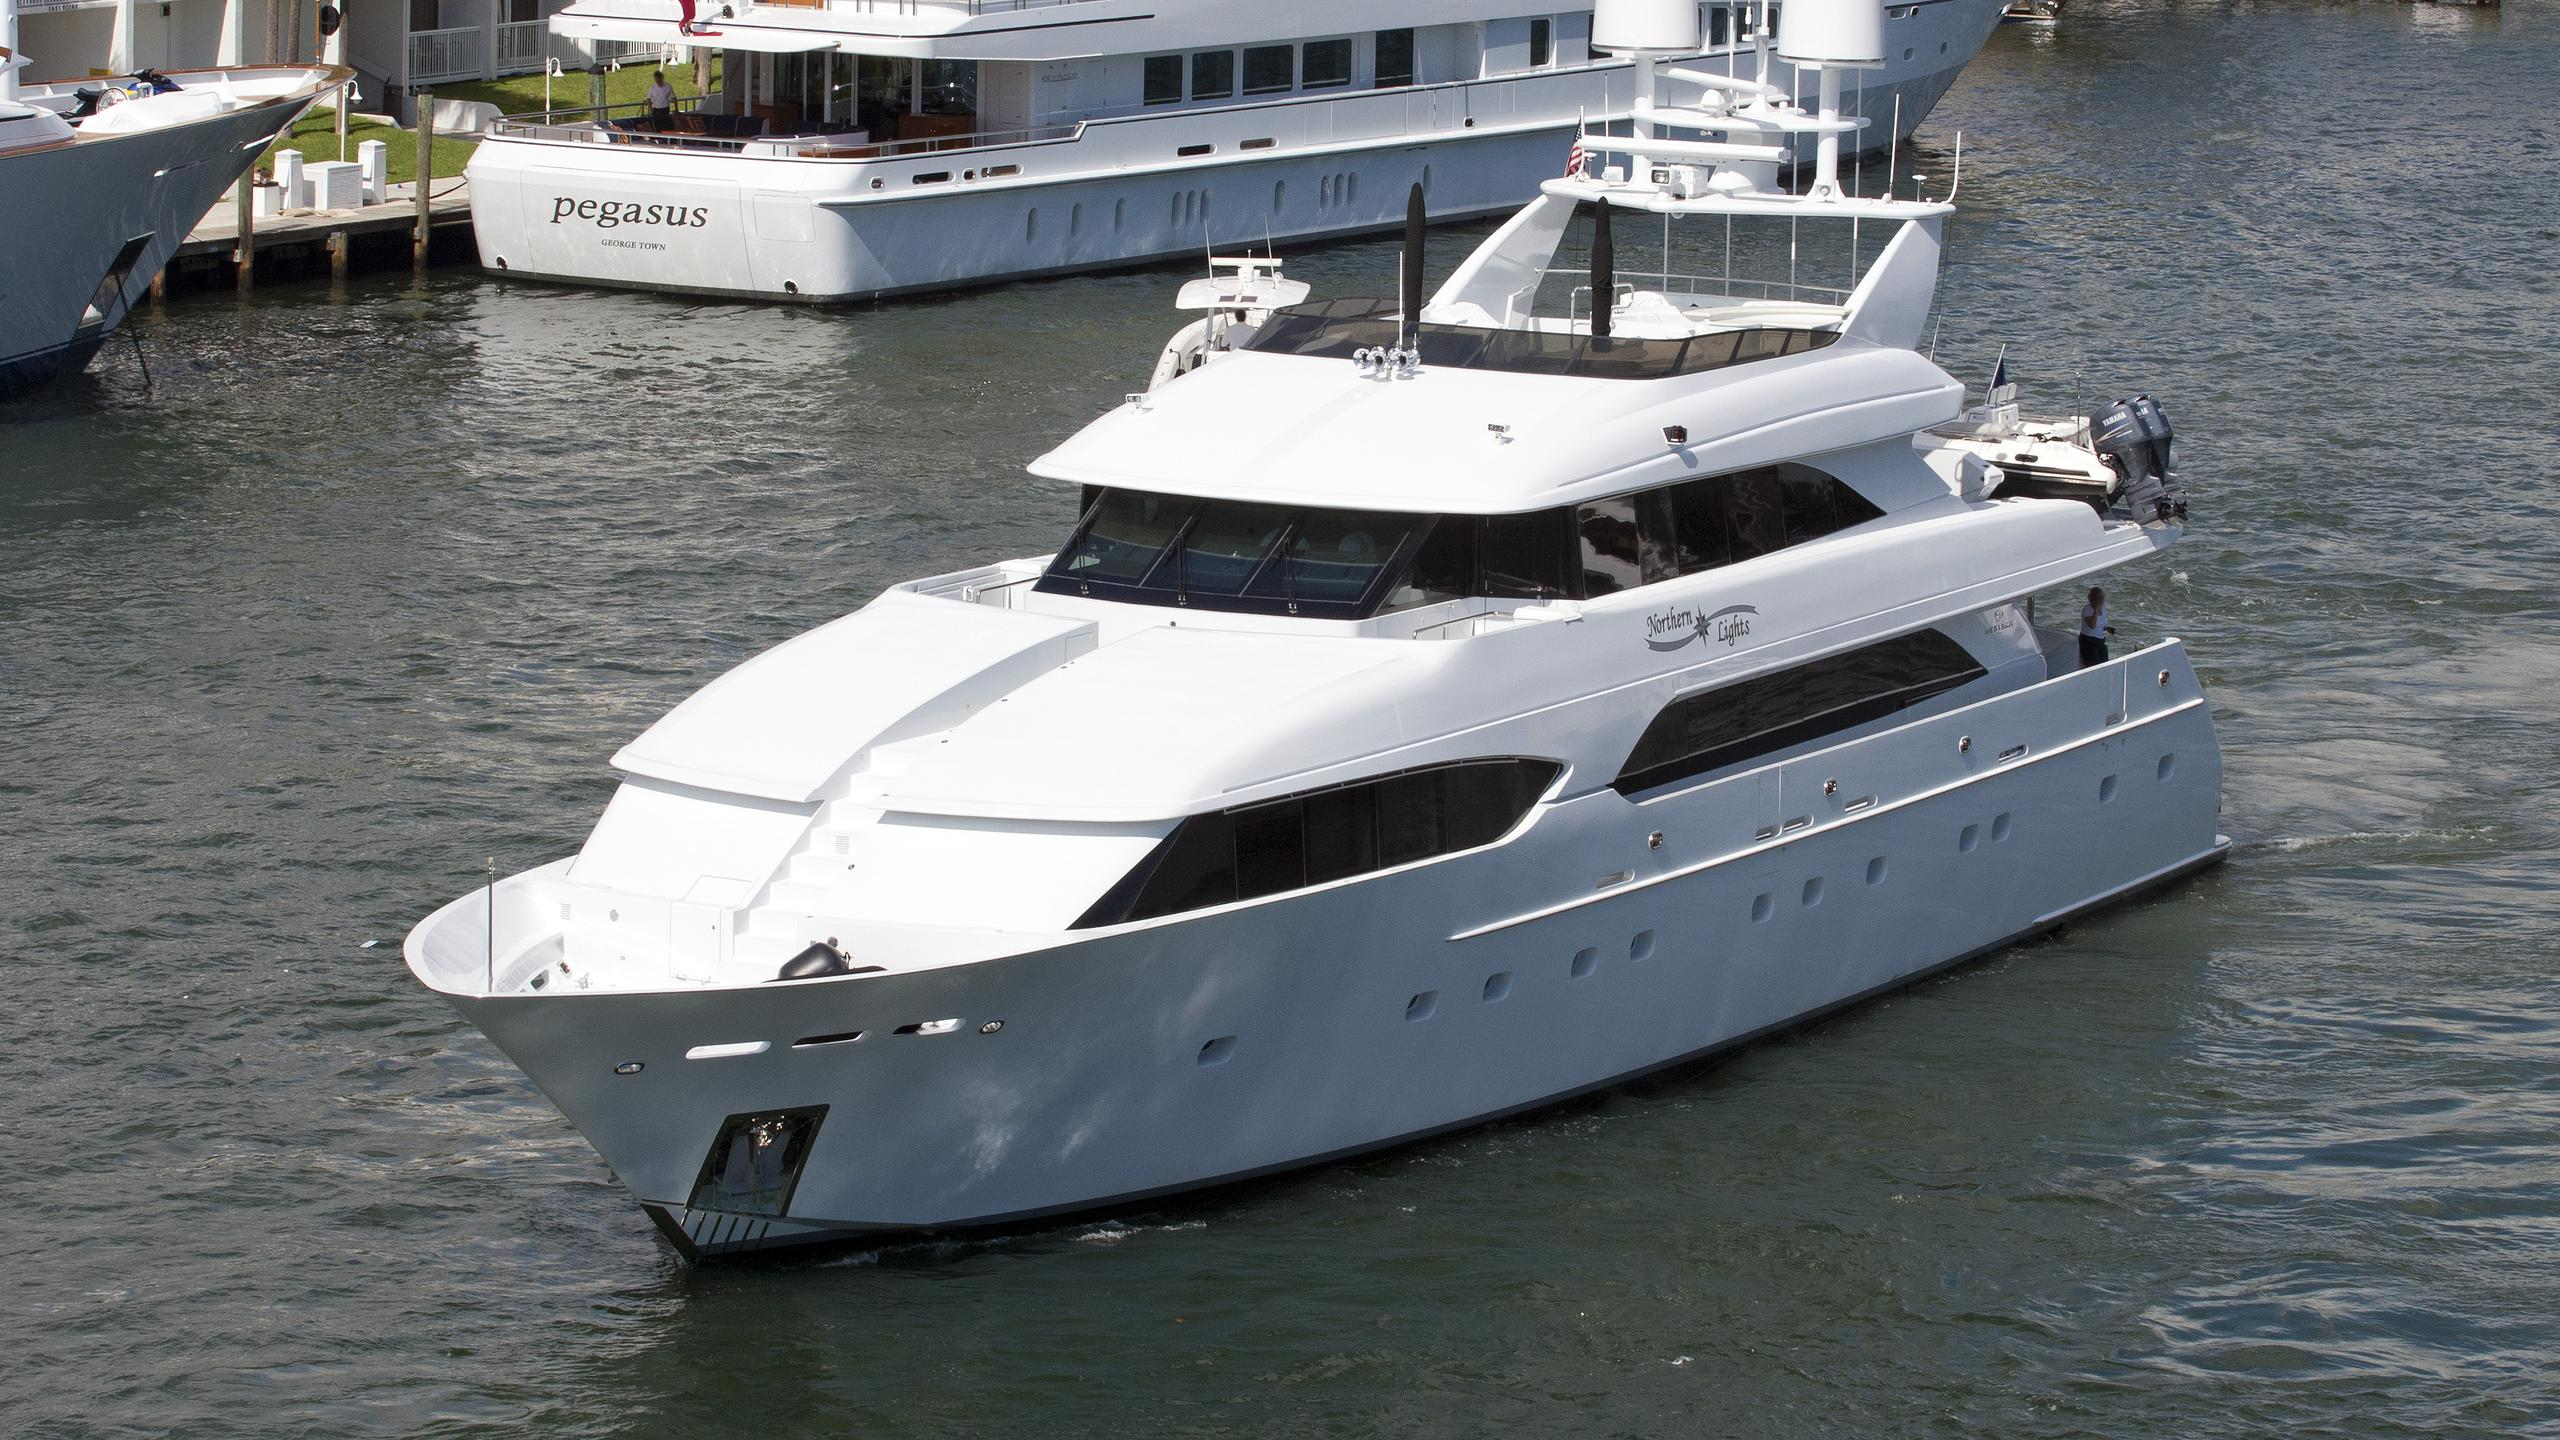 invision-northern-lights-motor-yacht-westship-trident-132-2000-40m-front-profile